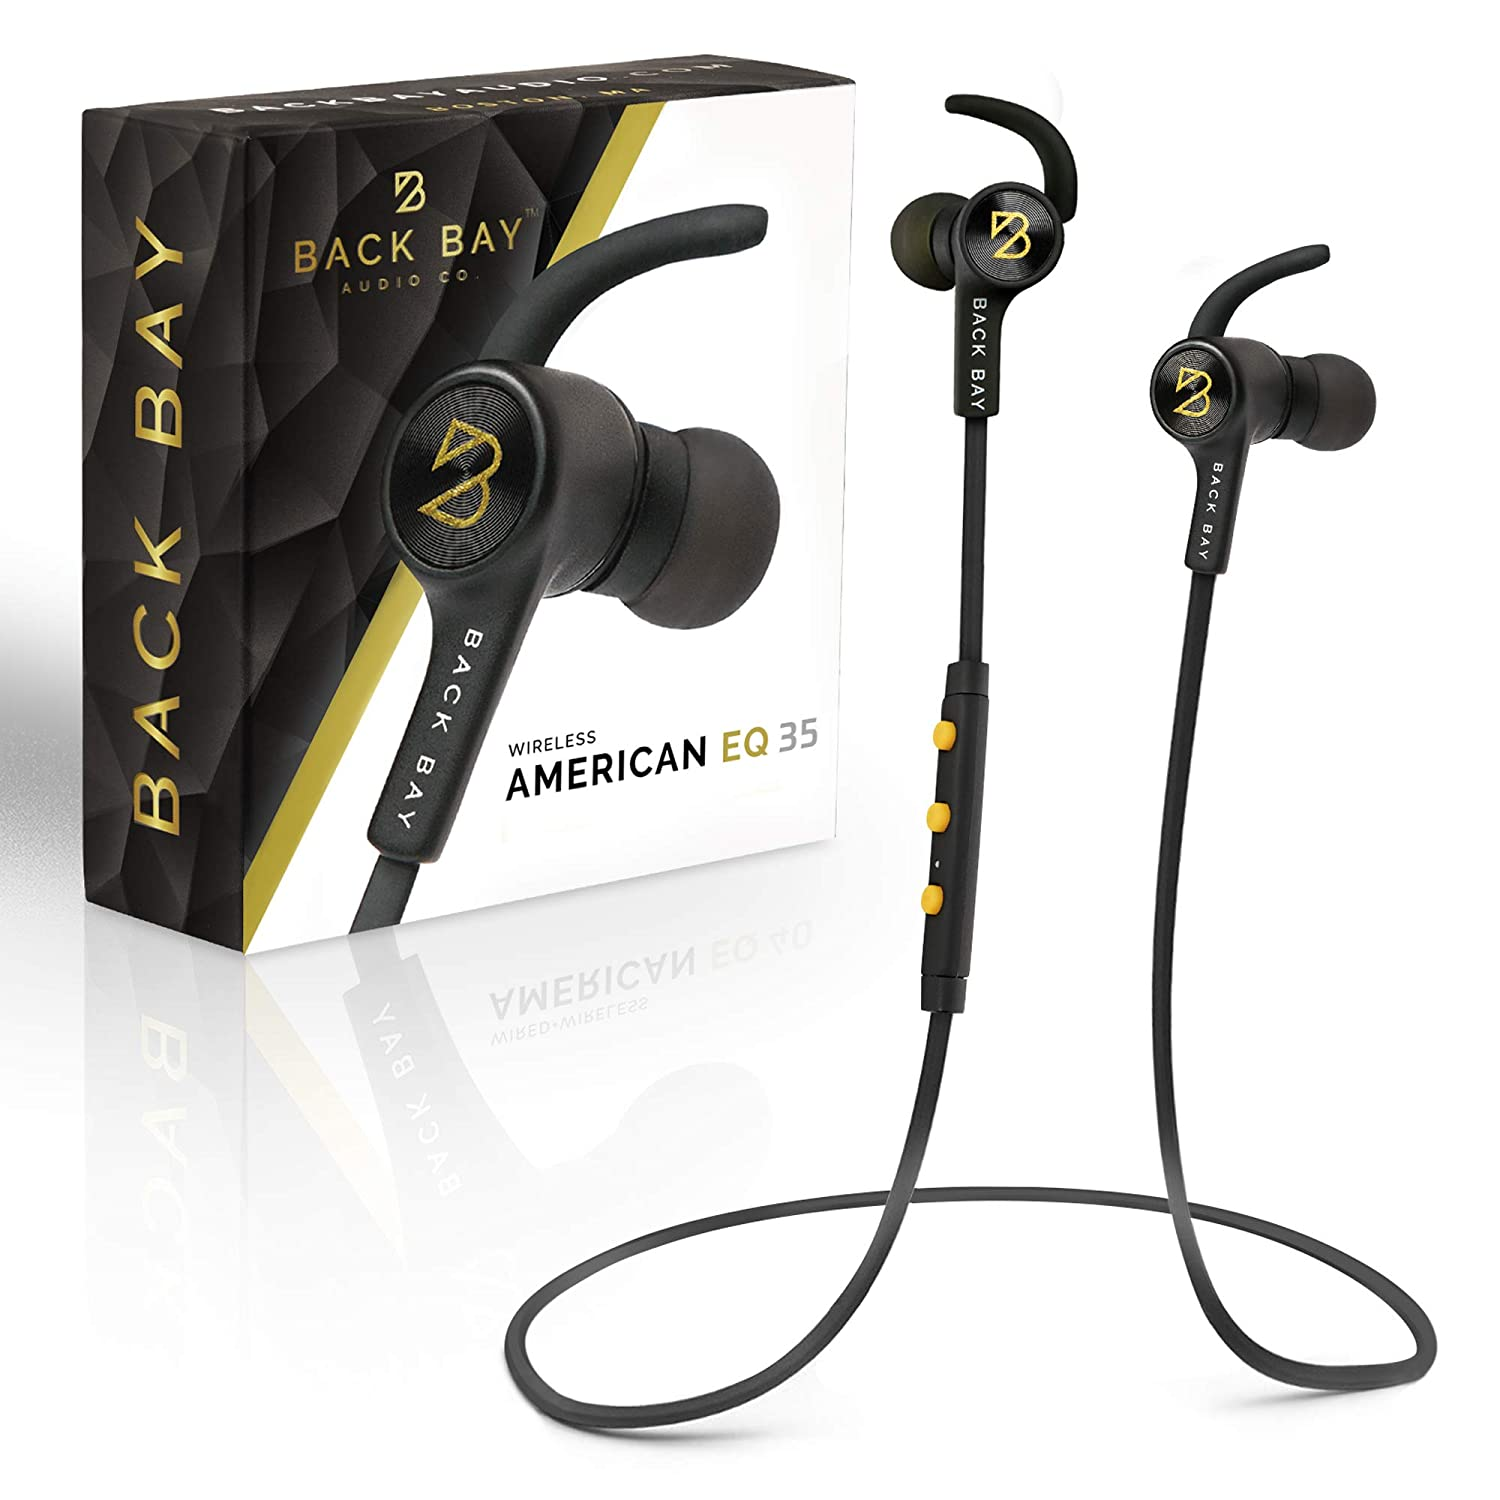 Back Bay – American EQ-35 Bluetooth Earphones. Sweatproof Wireless Earbuds 2019 Update with APTX Hi-Fi Stereo Sound, 8-Hour Battery, Microphone, Magnet, in-Ear Headhones and Carrying Bag